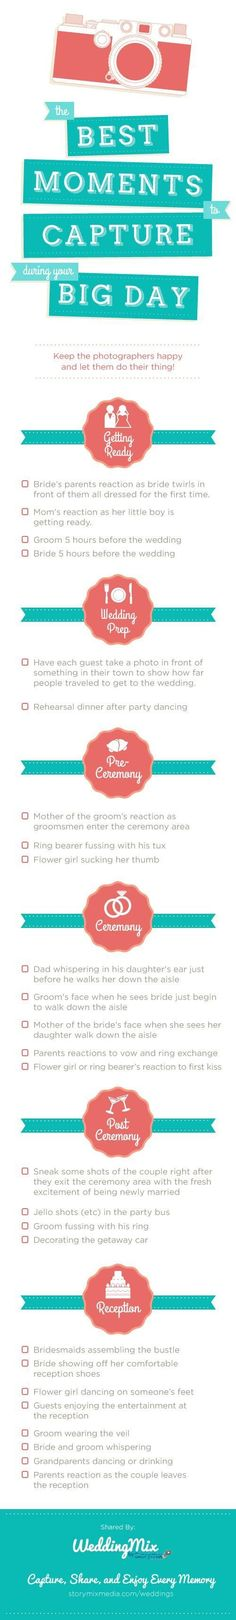 It's a great thing to come across wedding planning tips packaged so nicely. With that in mind, we're sharing some pretty resourceful tools below to reference during the planning process. From advice on how to address invitations down to a comprehensive bridal bouquet guide, these infographics will give you a push in the right direction. Take a […]